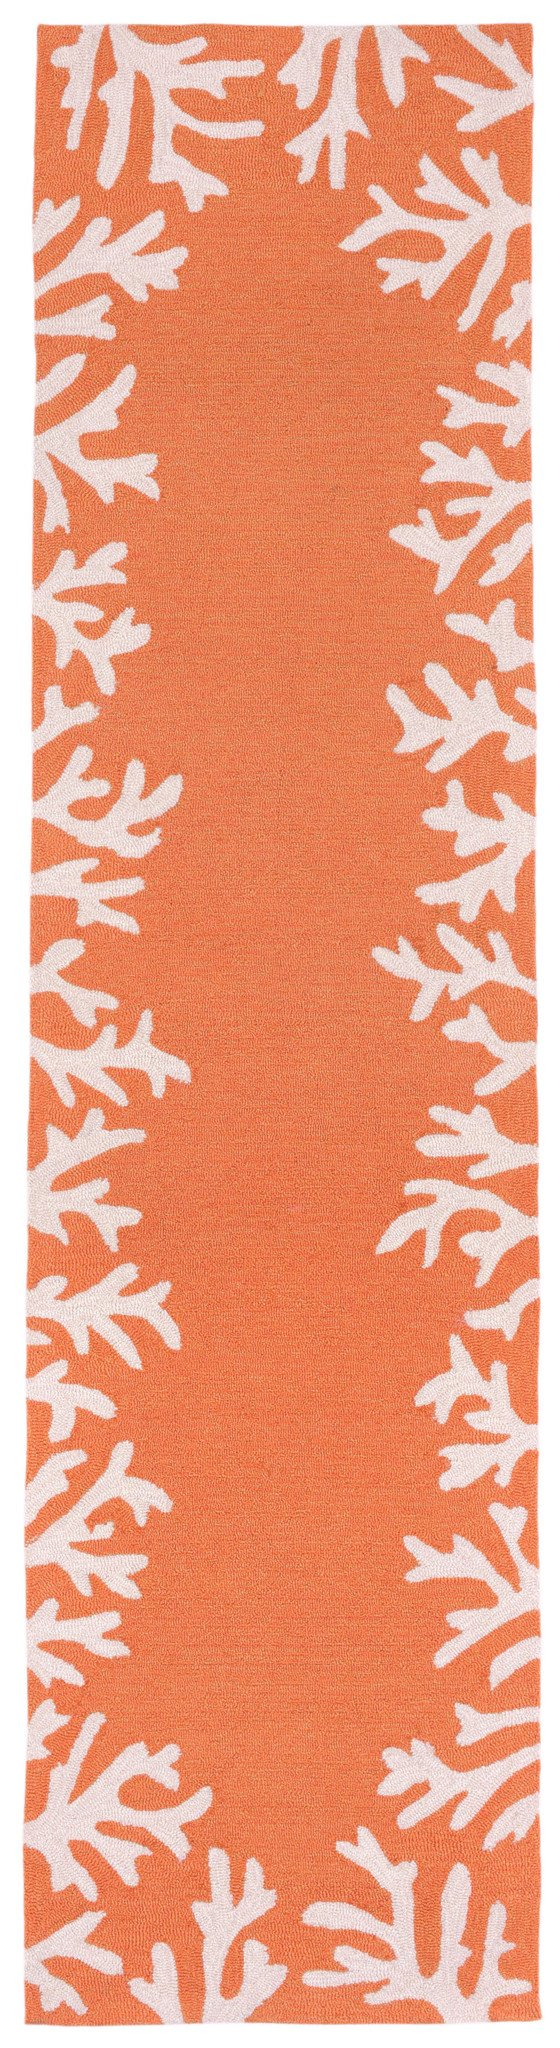 Trans-Ocean Imports CAPR8162017 Capri Collection Orange Finish Everywear Rug from Trans-Ocean